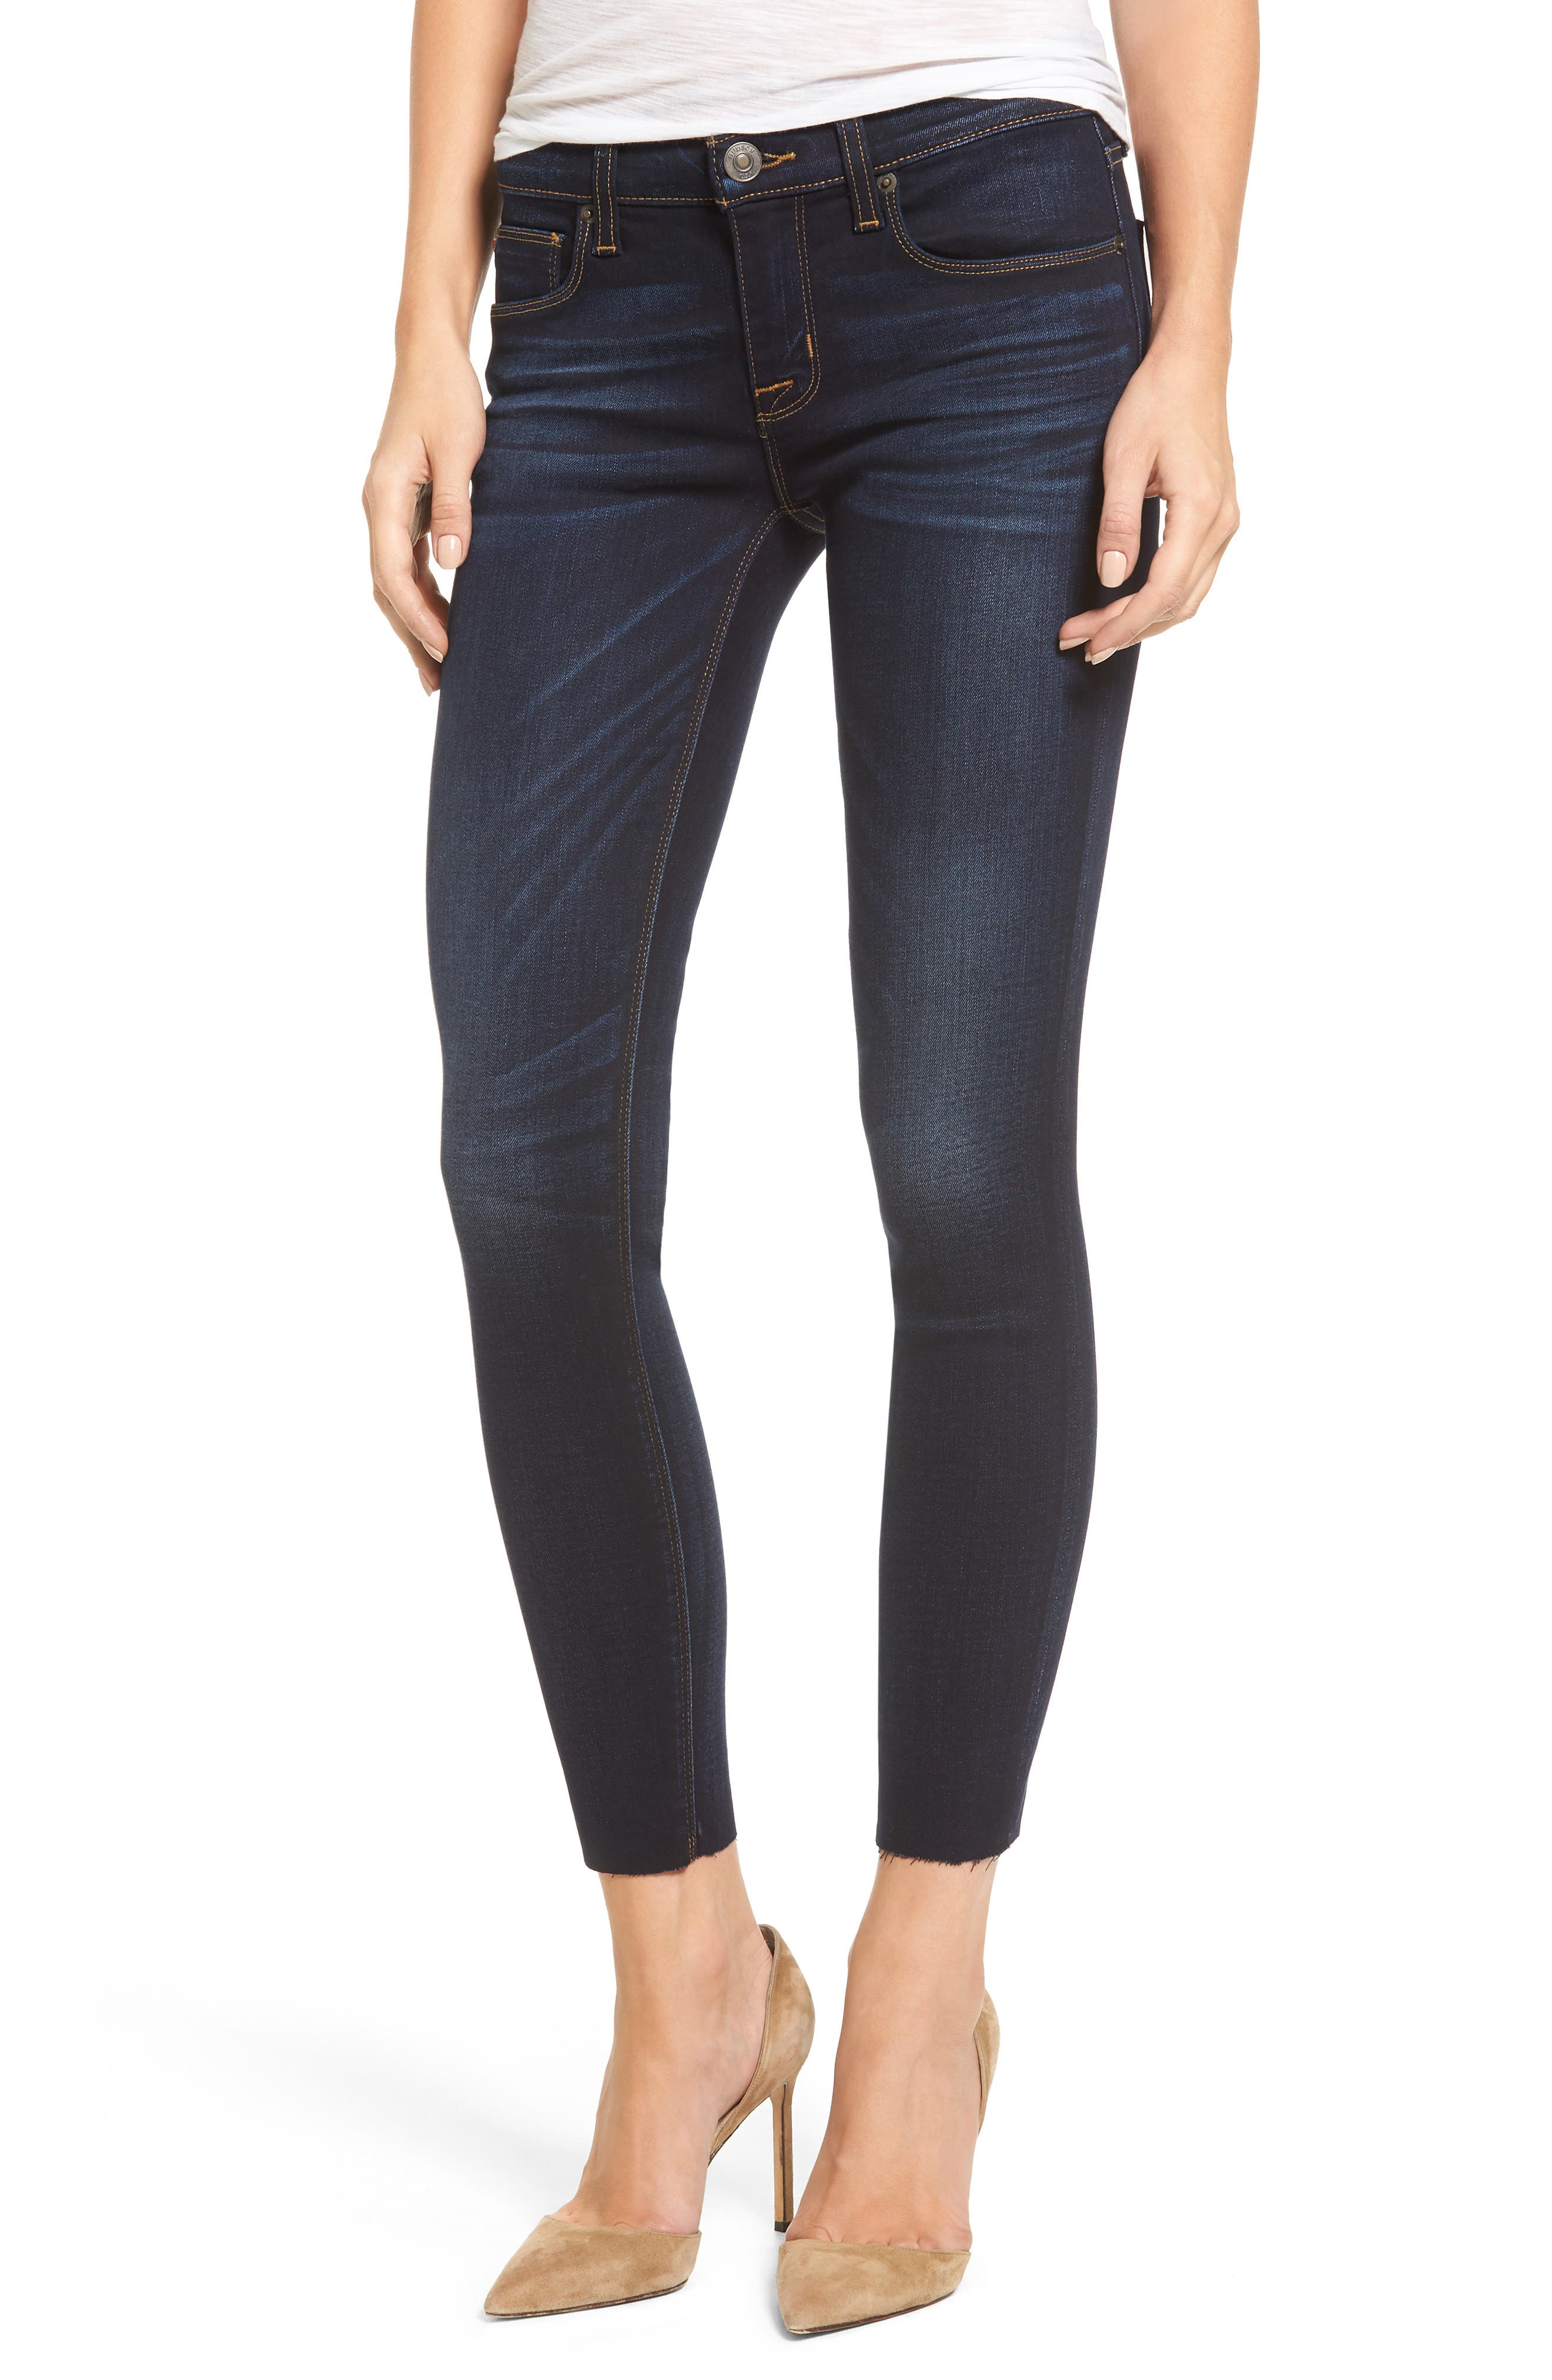 Alternate Image 1 Selected - Hudson Jeans 'Krista' Raw Hem Ankle Super Skinny Jeans (Calvary)